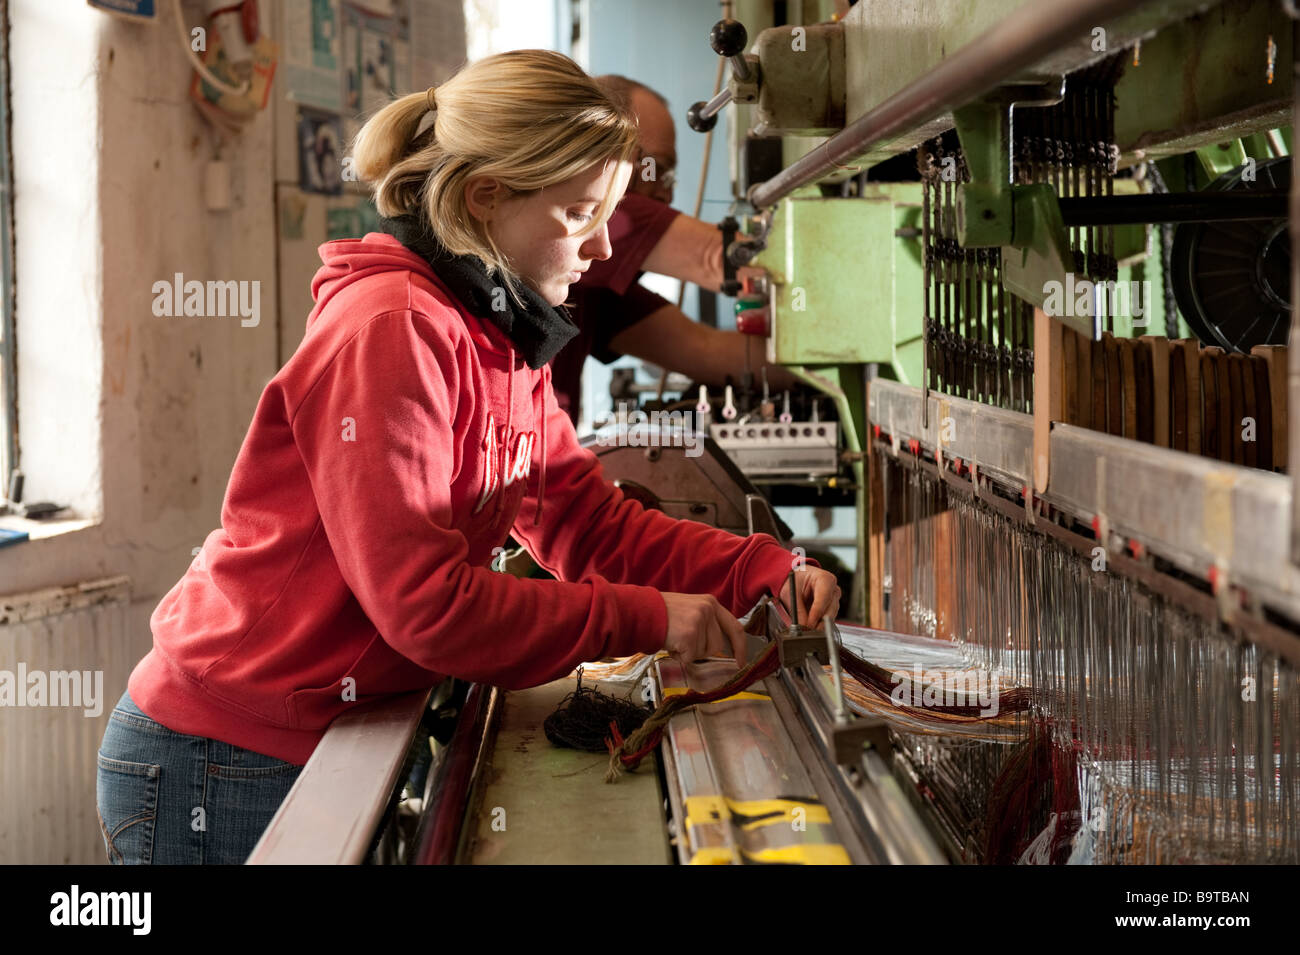 A young woman setting up yarns on the the weaving loom at Melin Tregwynt welsh woollen mill Castlemorris Pembrokeshire - Stock Image